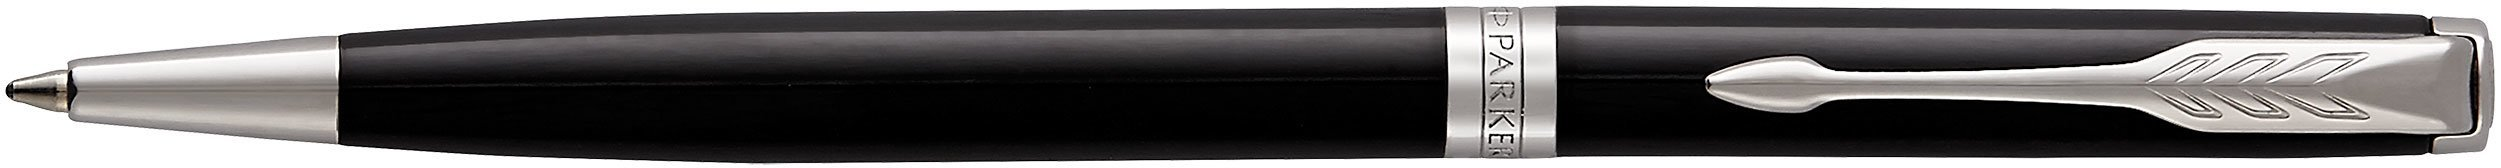 Шариковая ручка Parker Sonnet Core K430 Slim, Laque Black CT